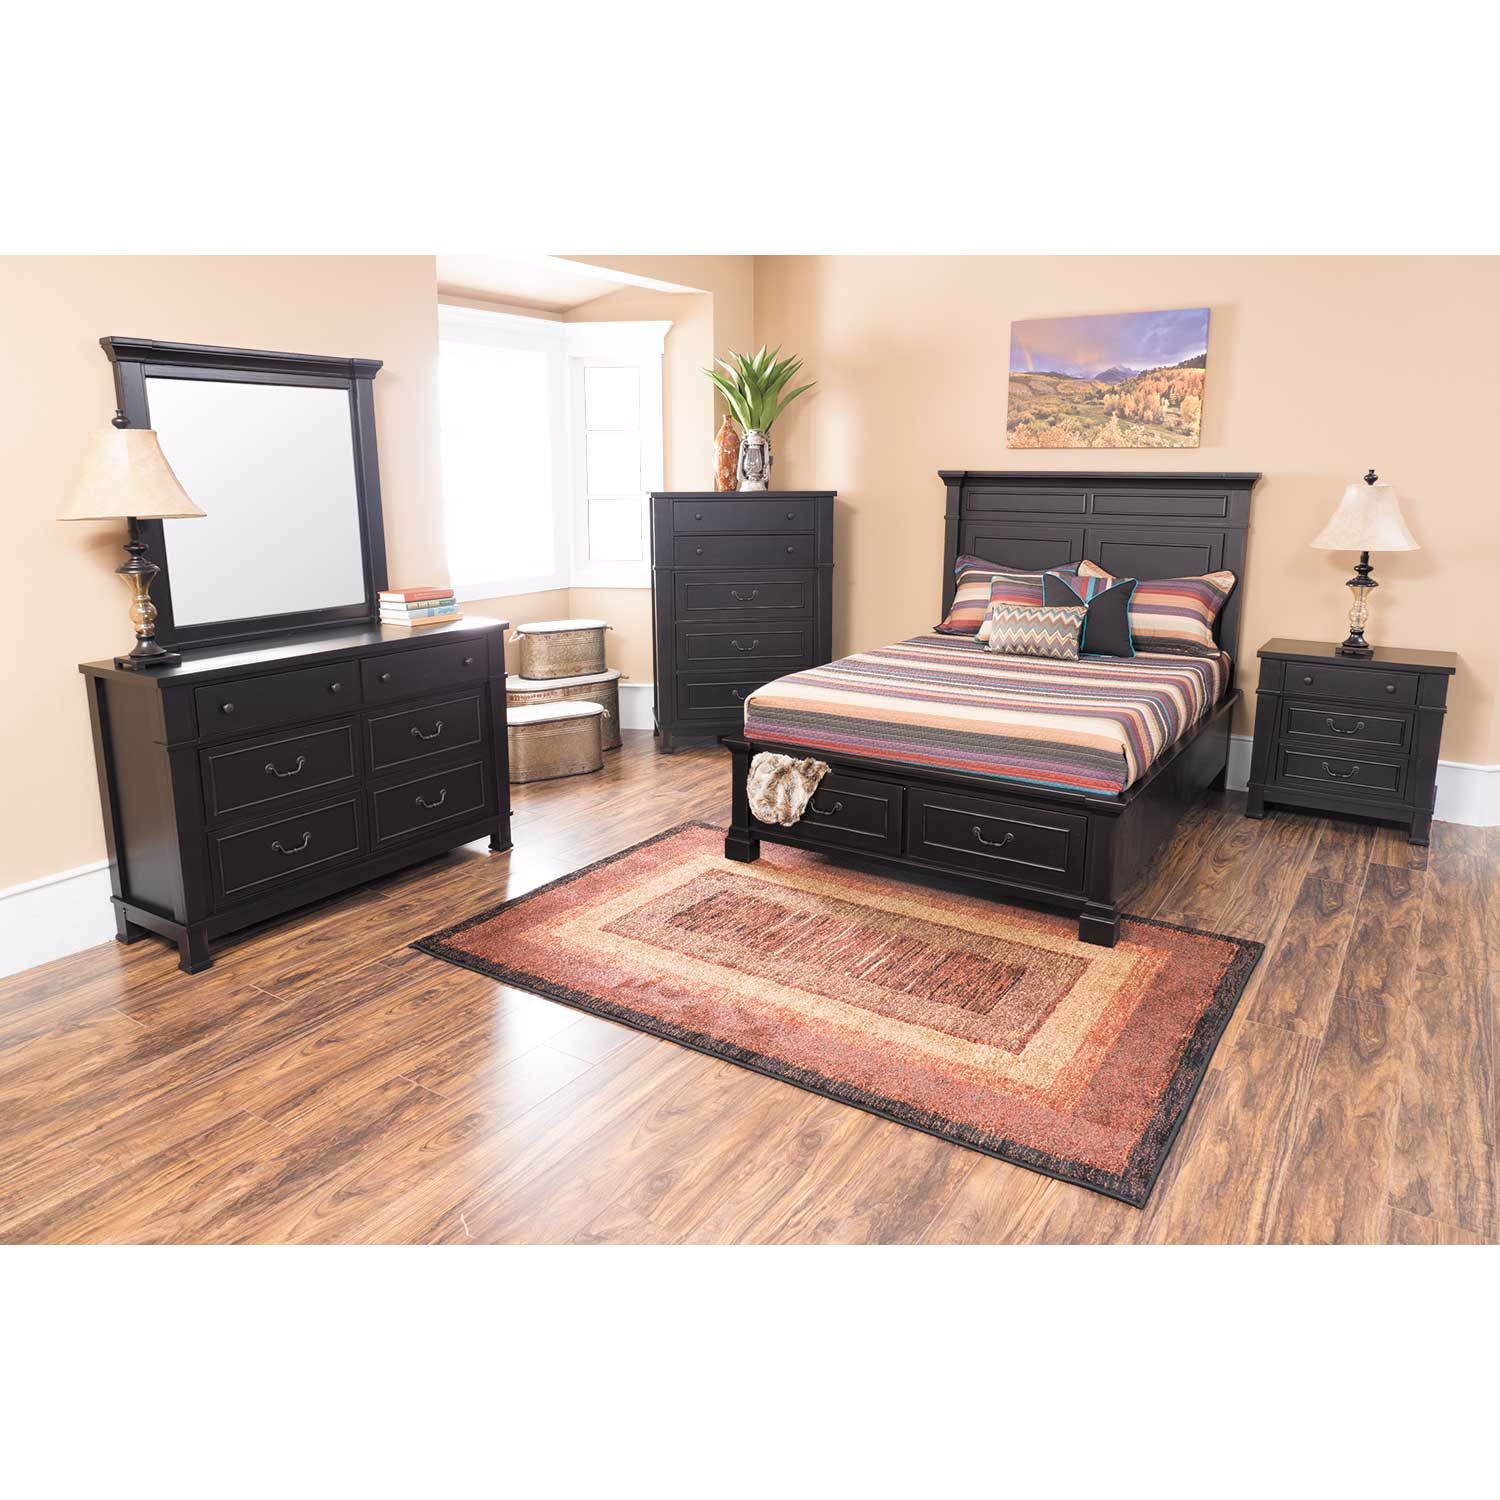 Picture of Annapolis Twin Bed